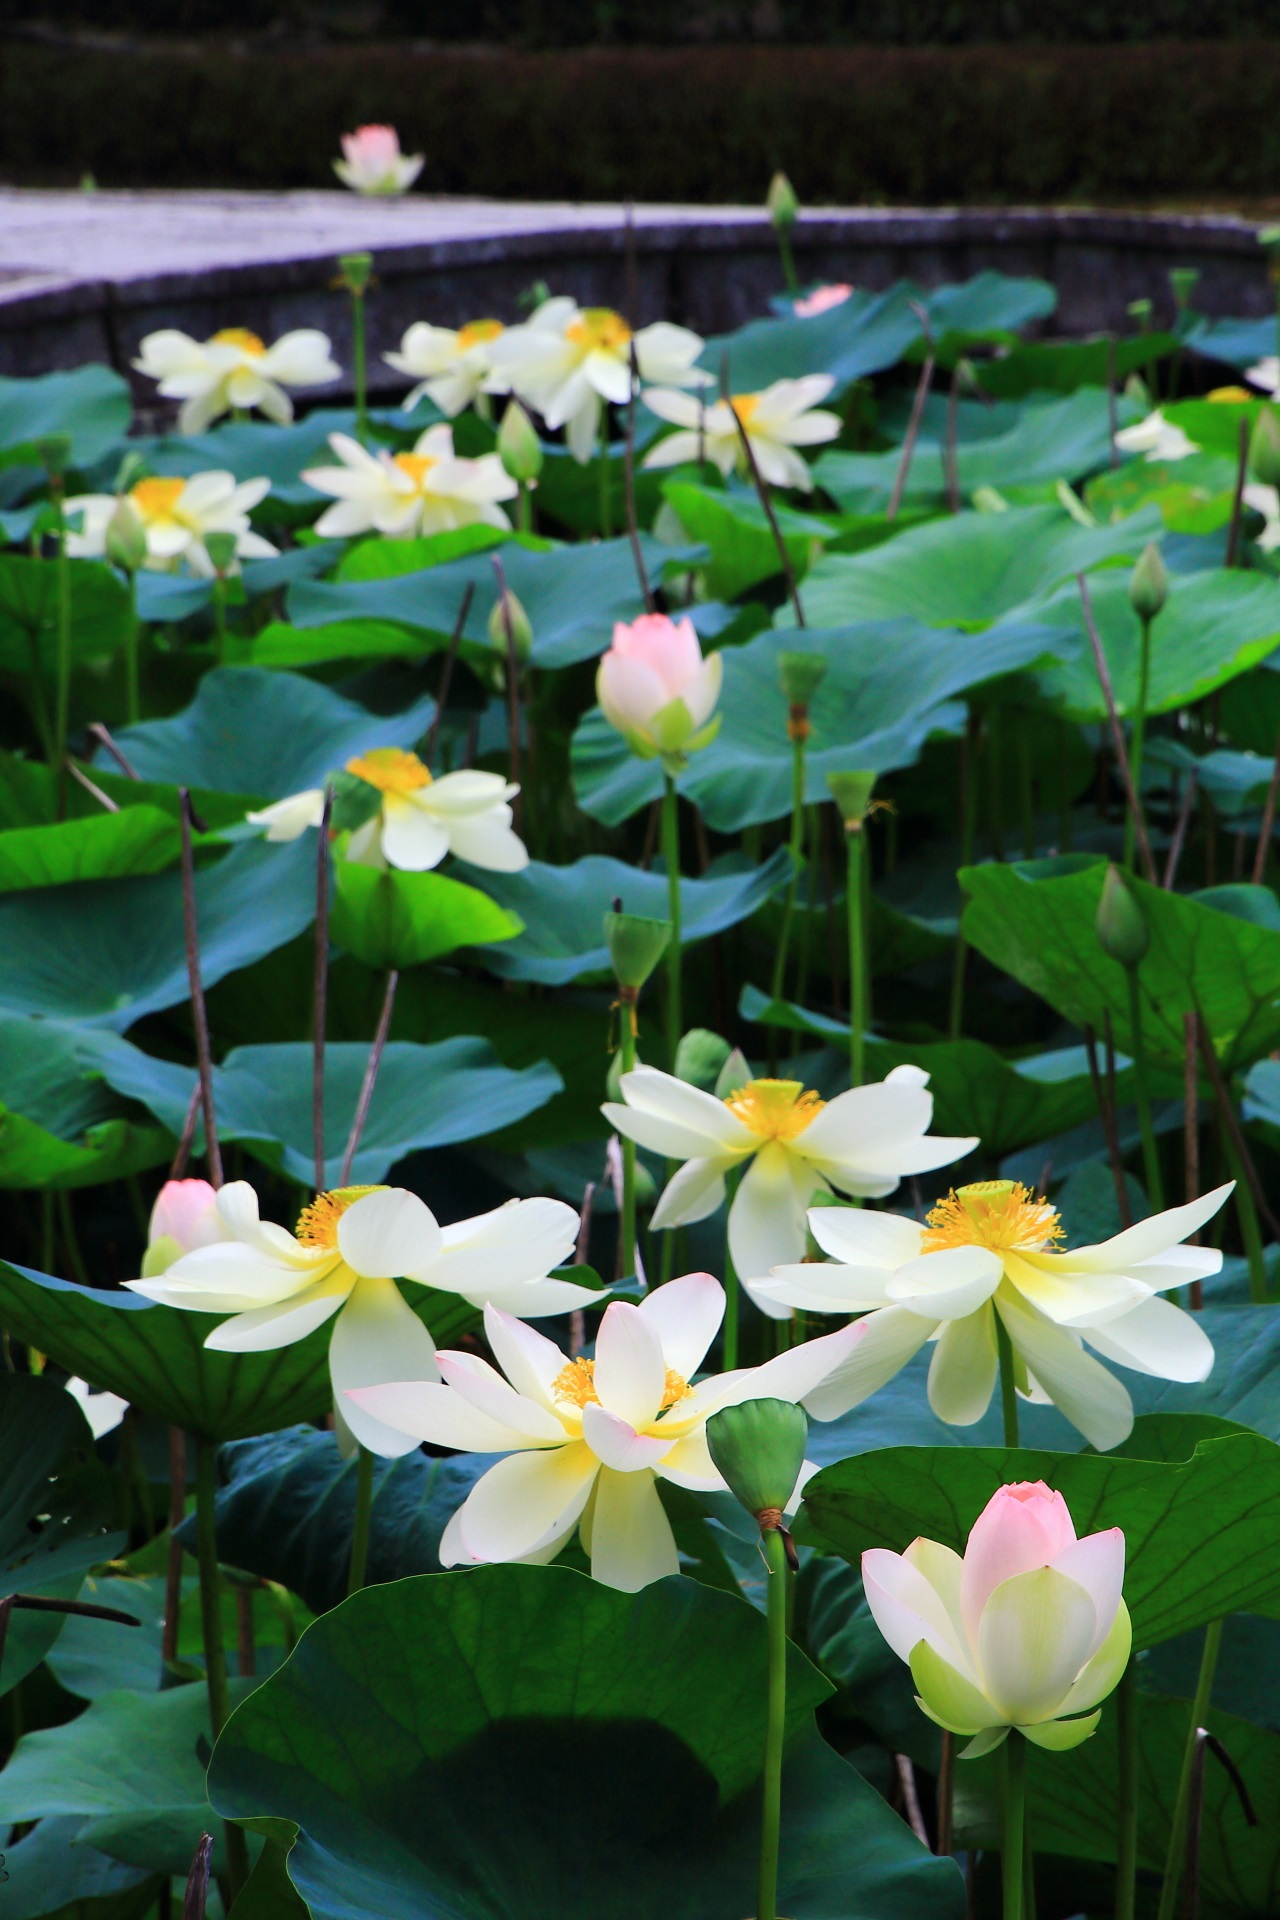 Tofuku-ji Temple in Kyoto where beautiful lotus flowers bloom